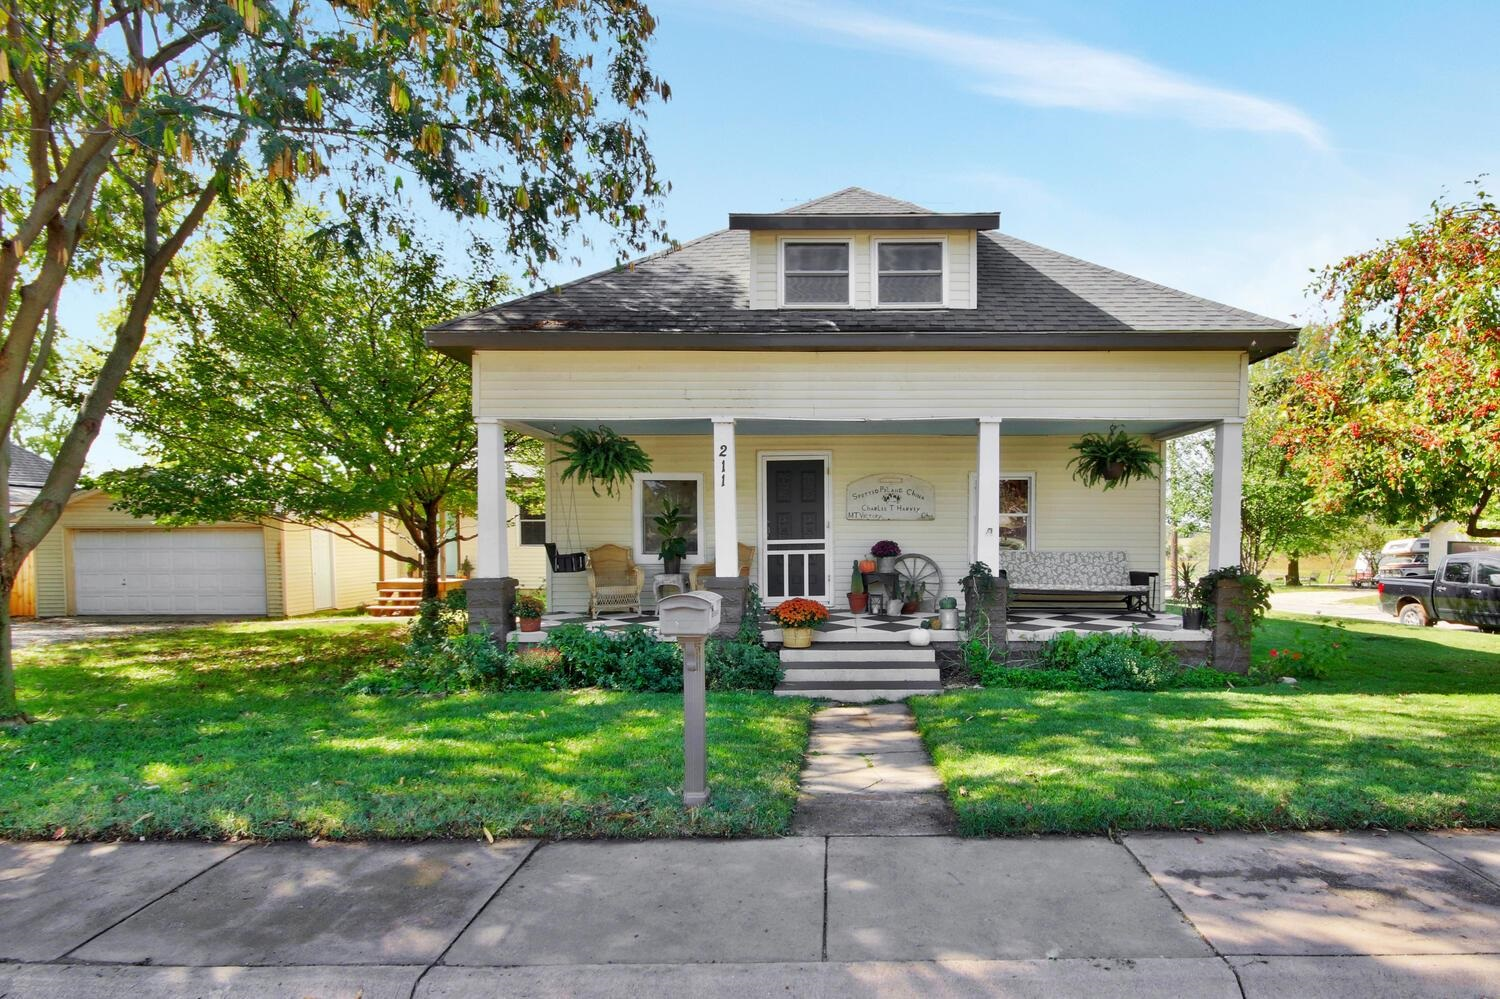 This amazing 3 bedroom, 2 bath, Mulvane Bungalow is truly a jewel and will remind you of a HGTV reno